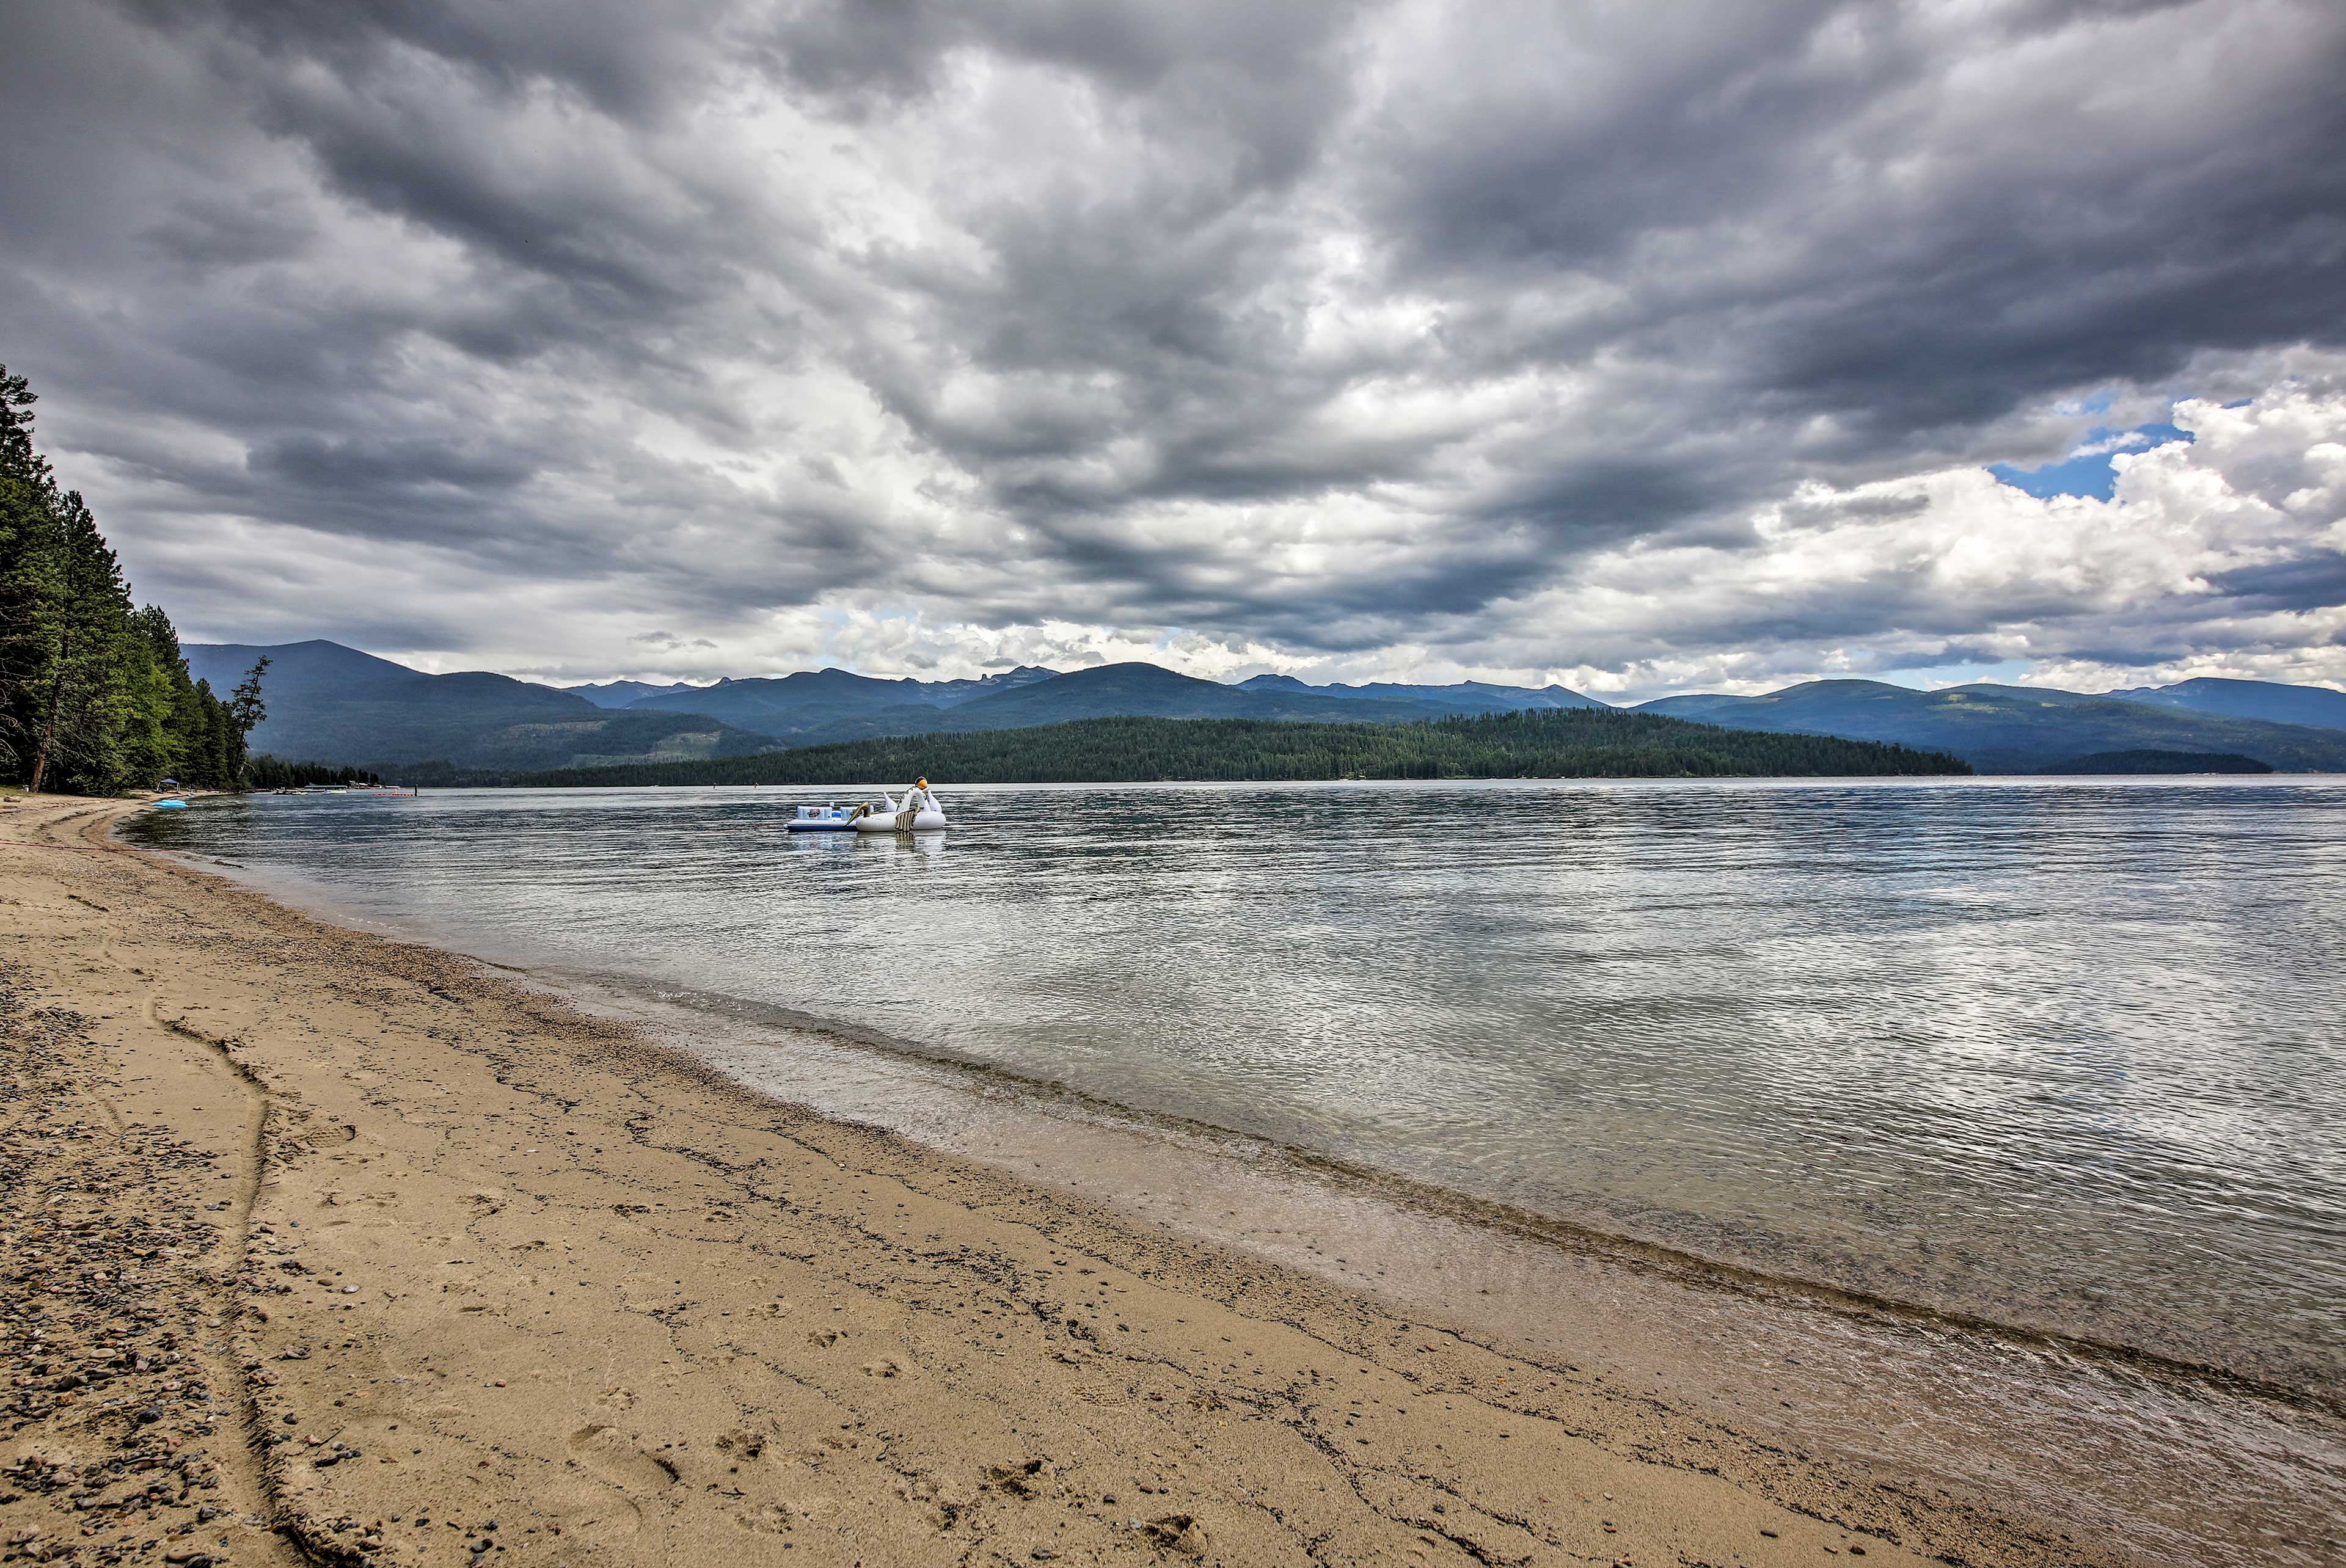 An unforgettable lake vacation awaits in Nordman, Idaho!